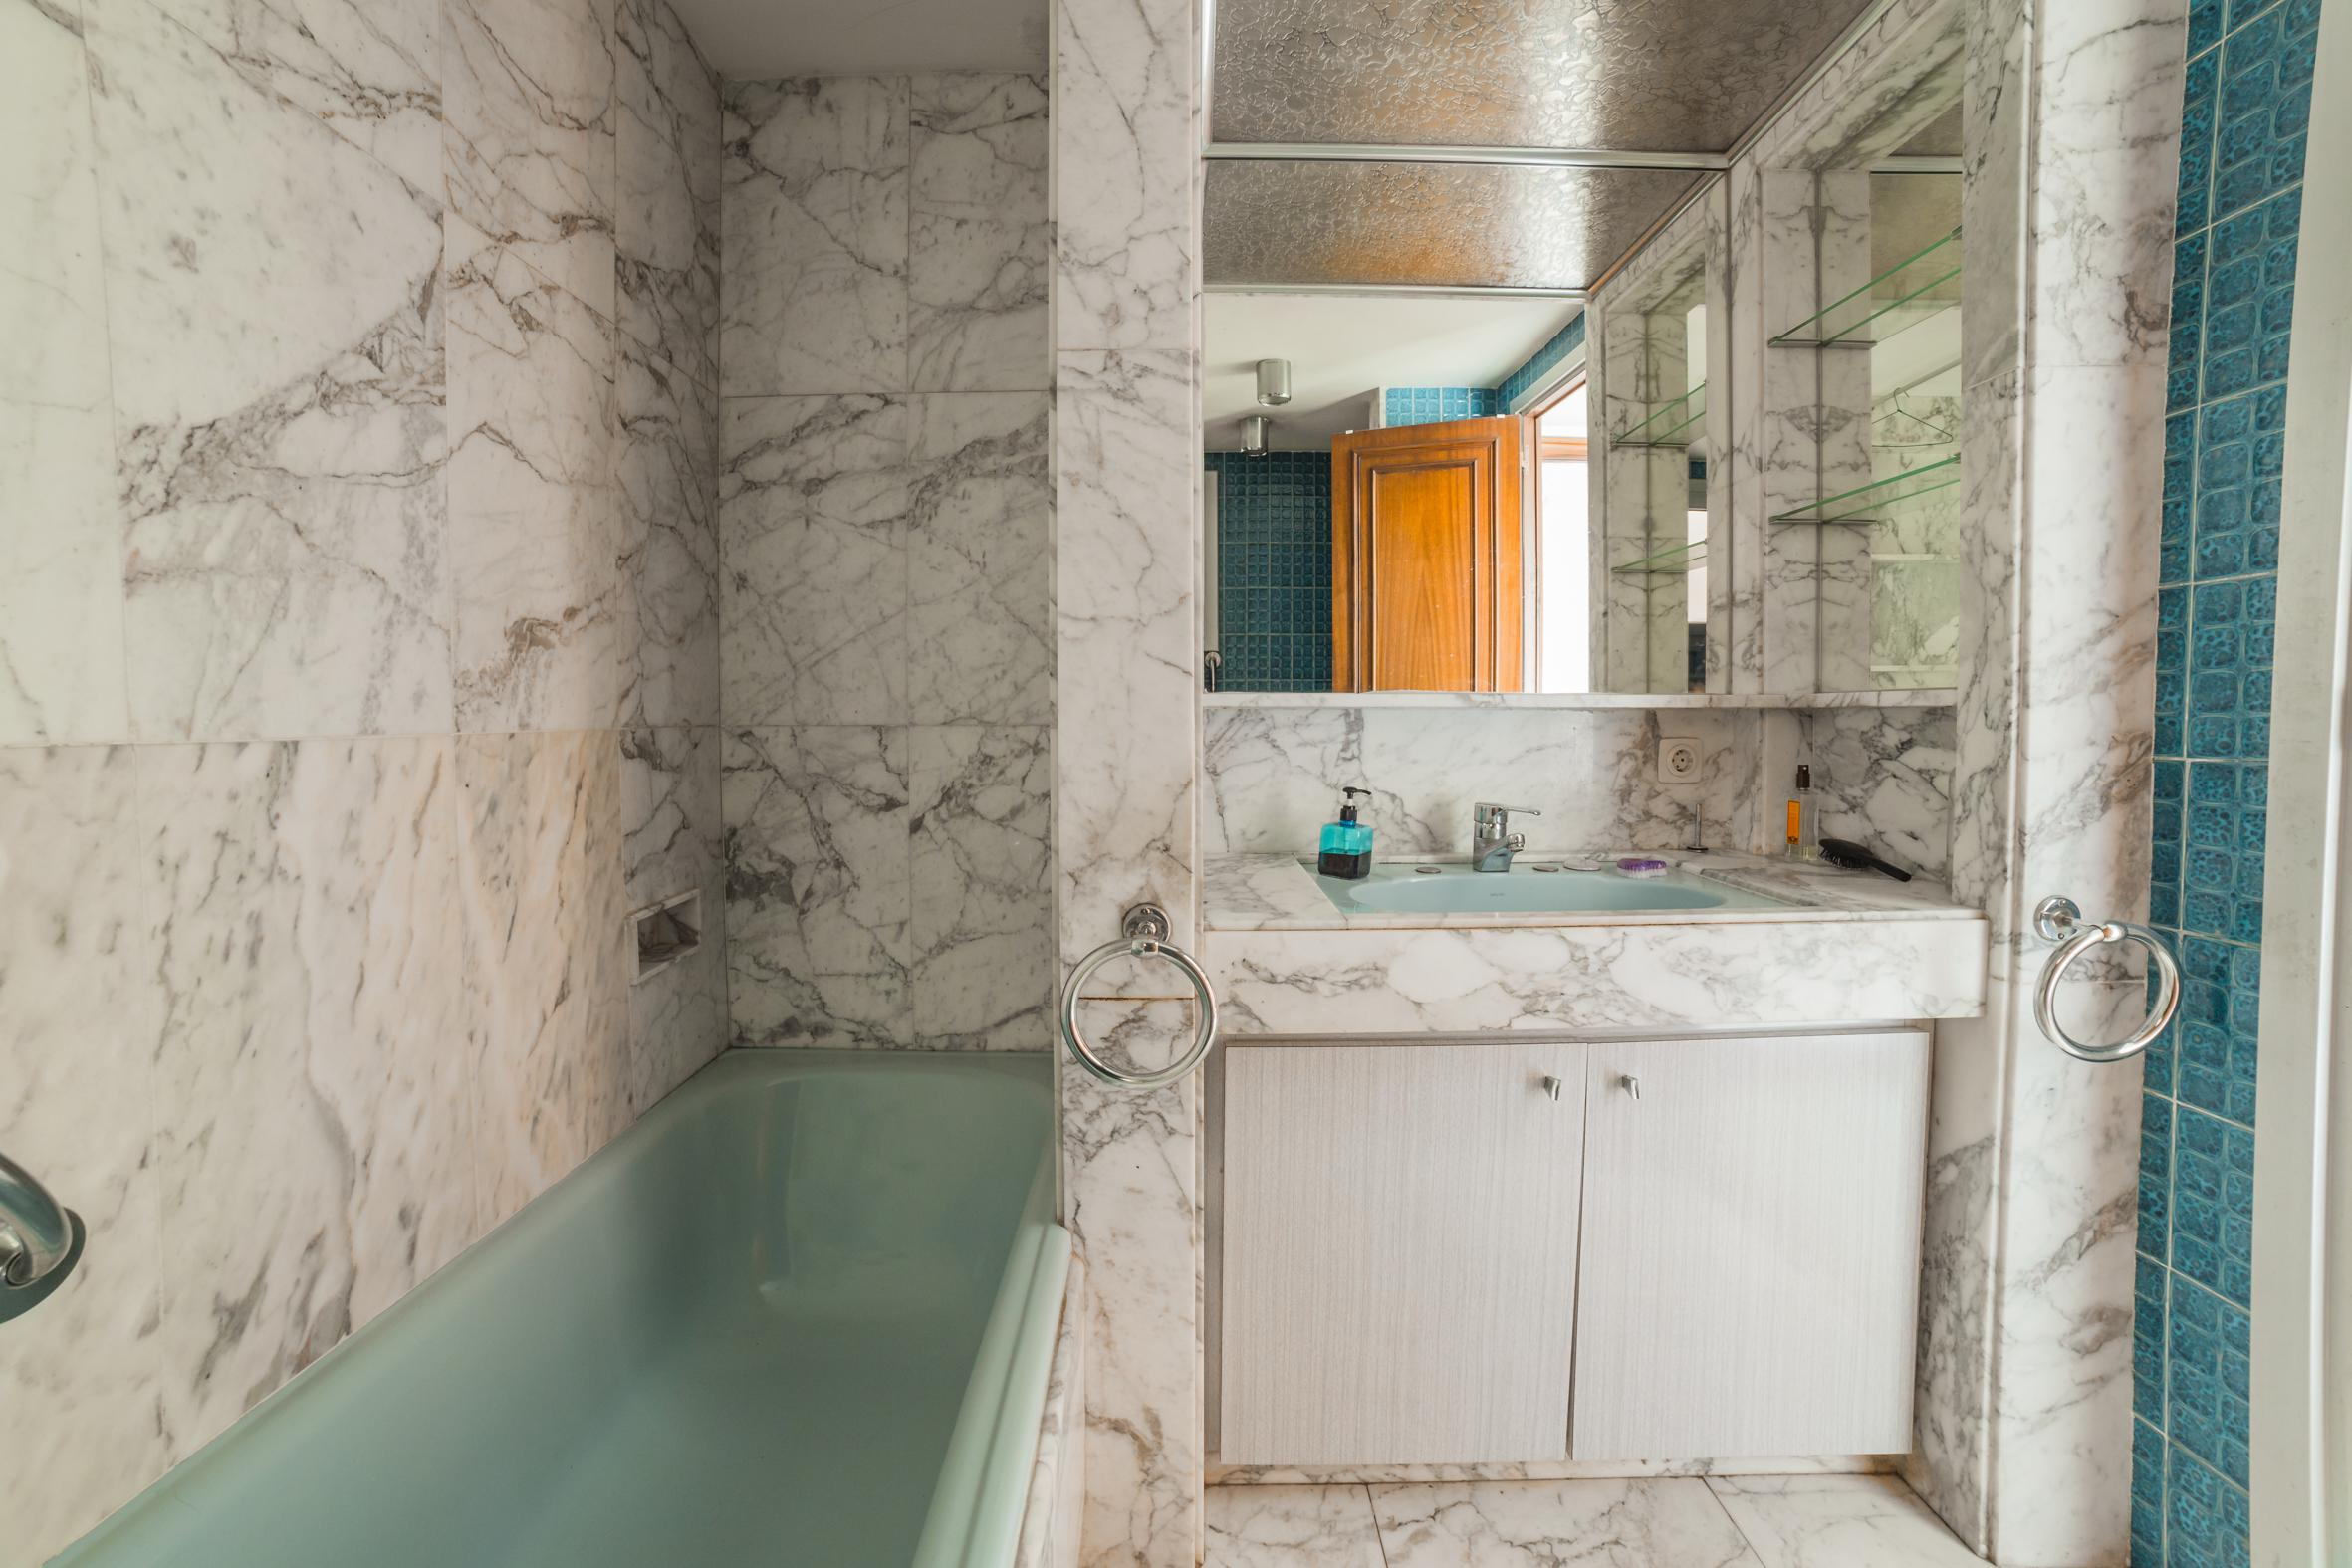 248988 Flat for sale in Les Corts, Les Corts 25